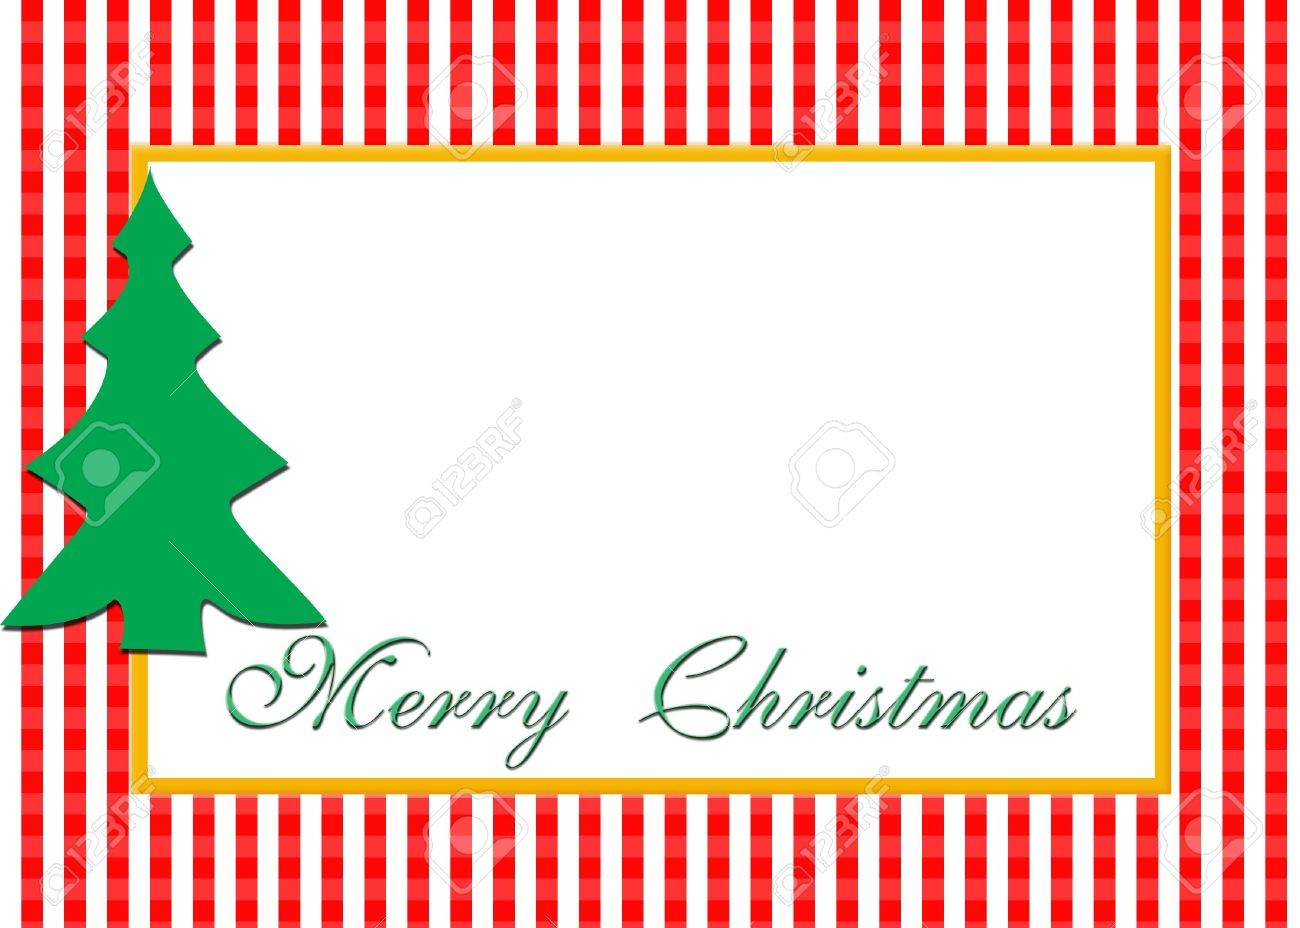 A Christmas Card Design With Blank Area For Photograph. Stock ...